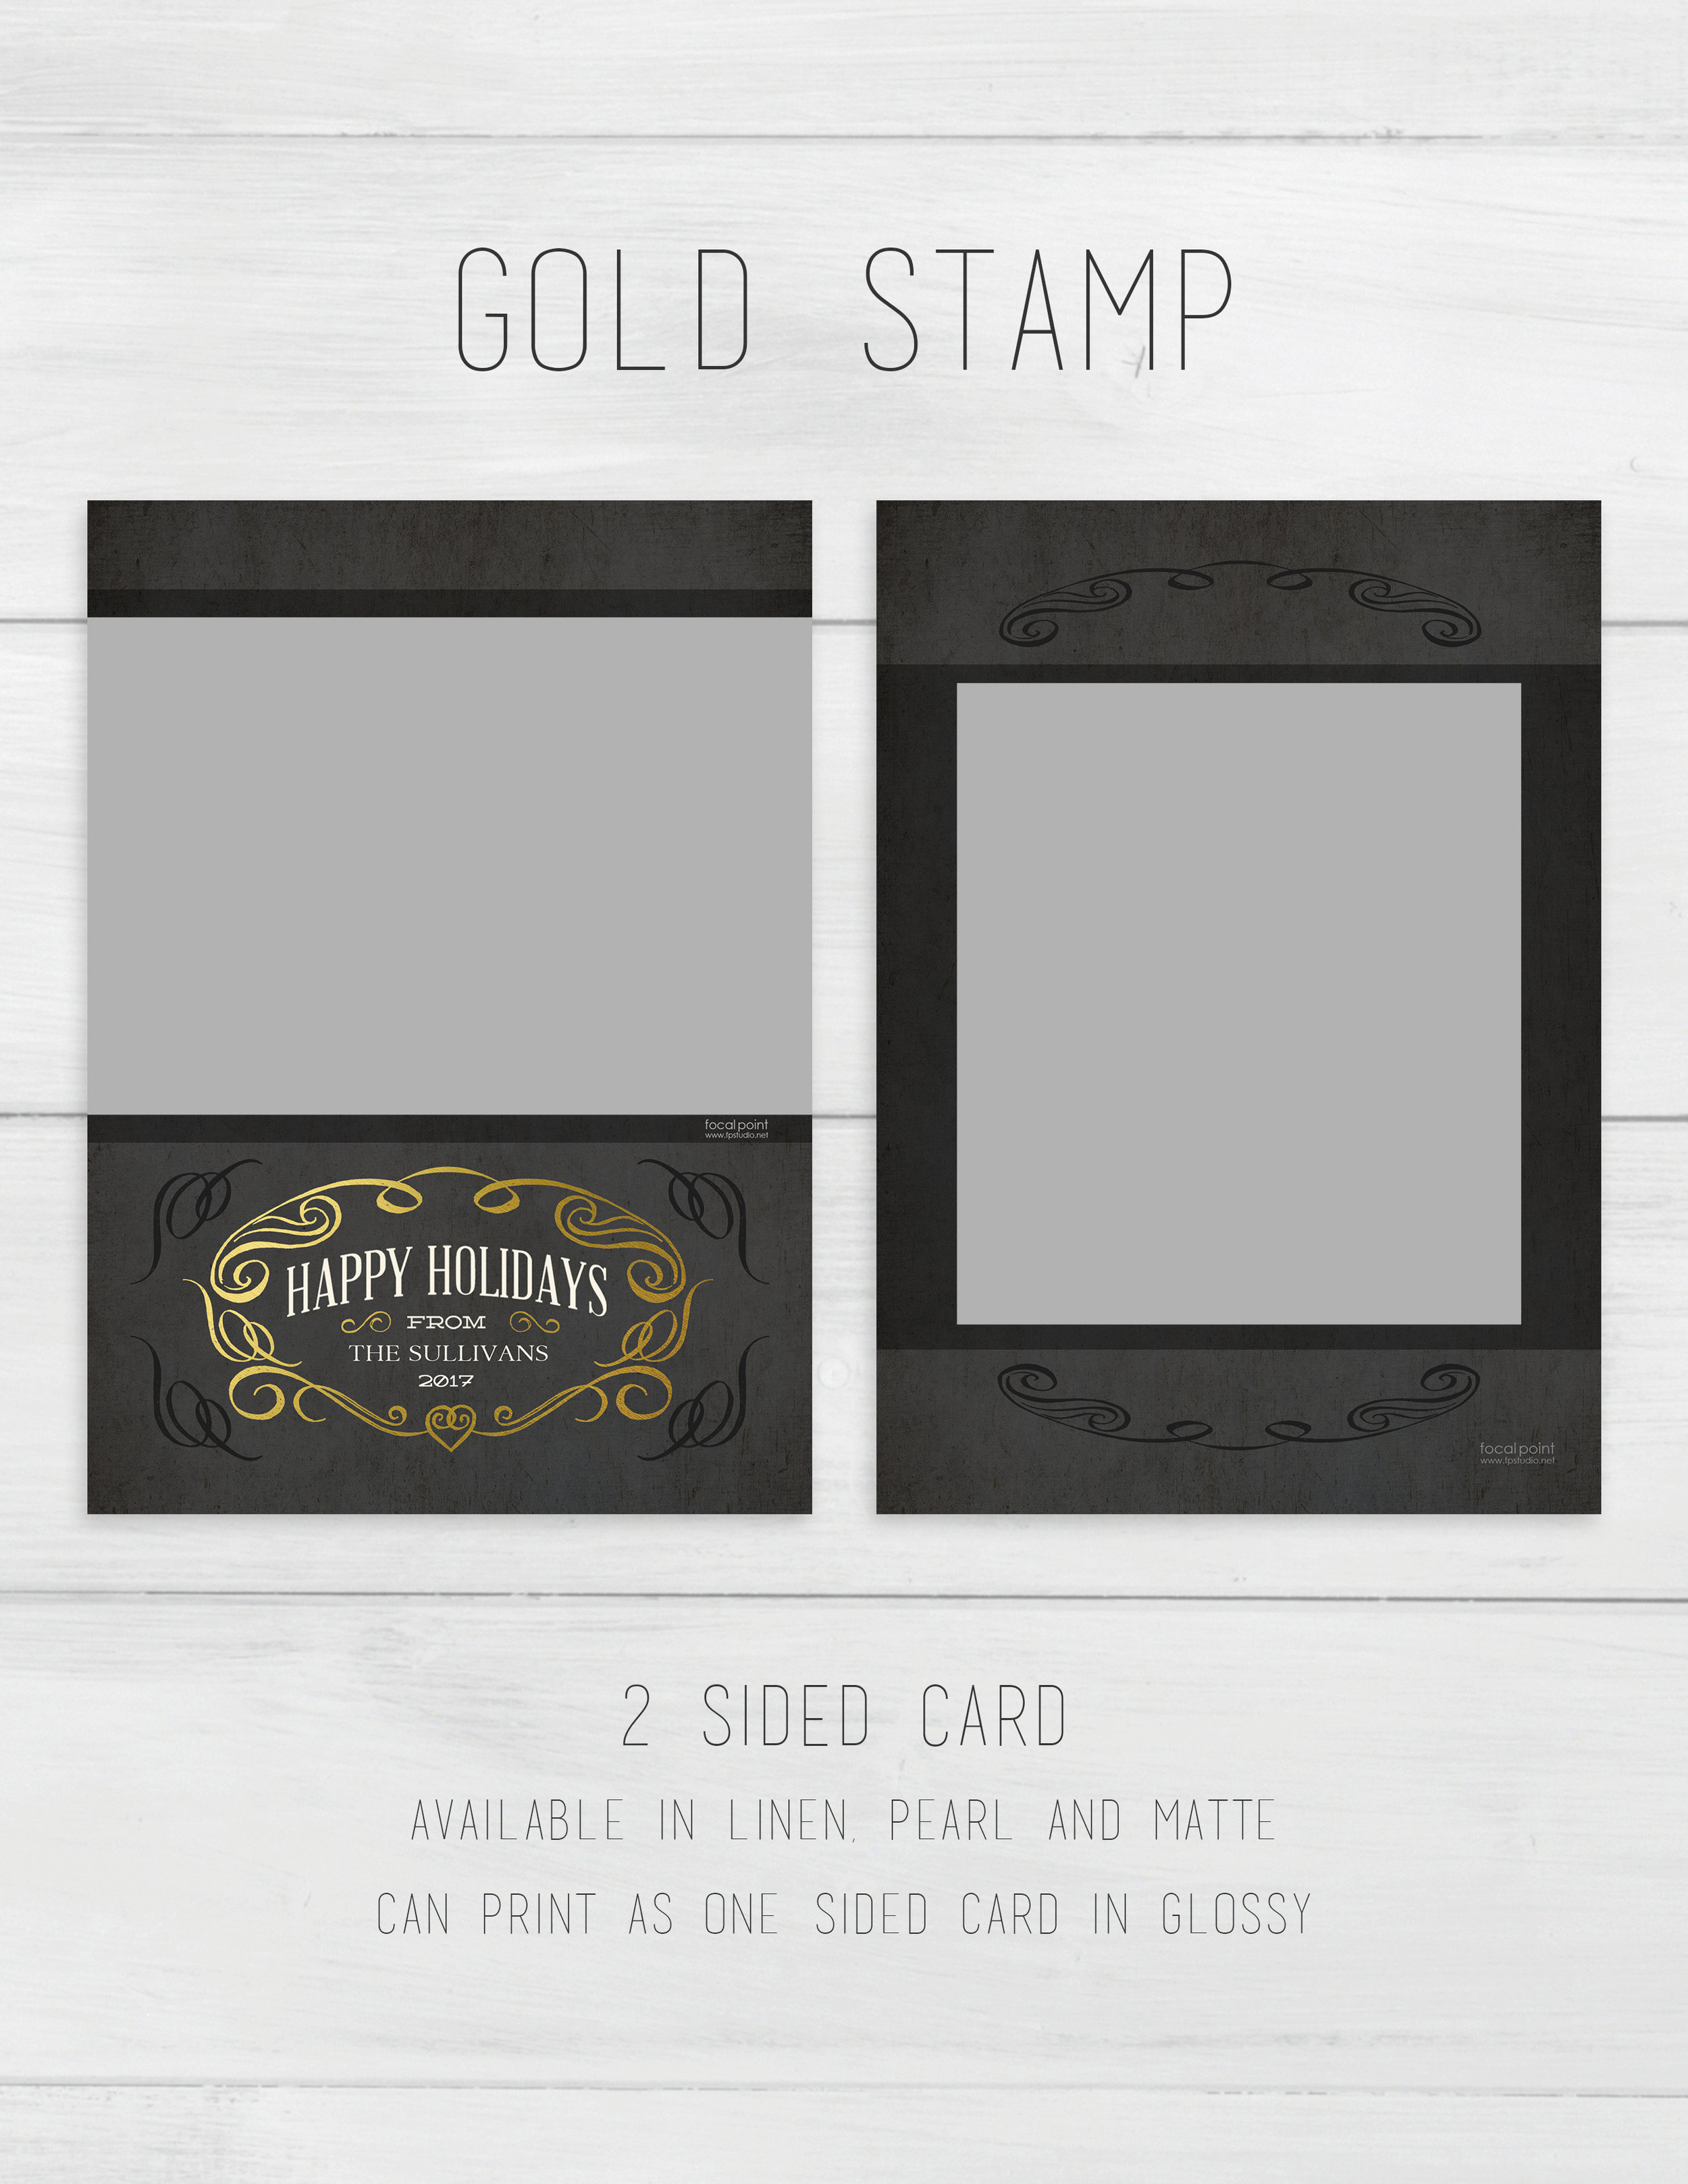 DISPLAY_2SIDE_Gold_Stamp.jpg